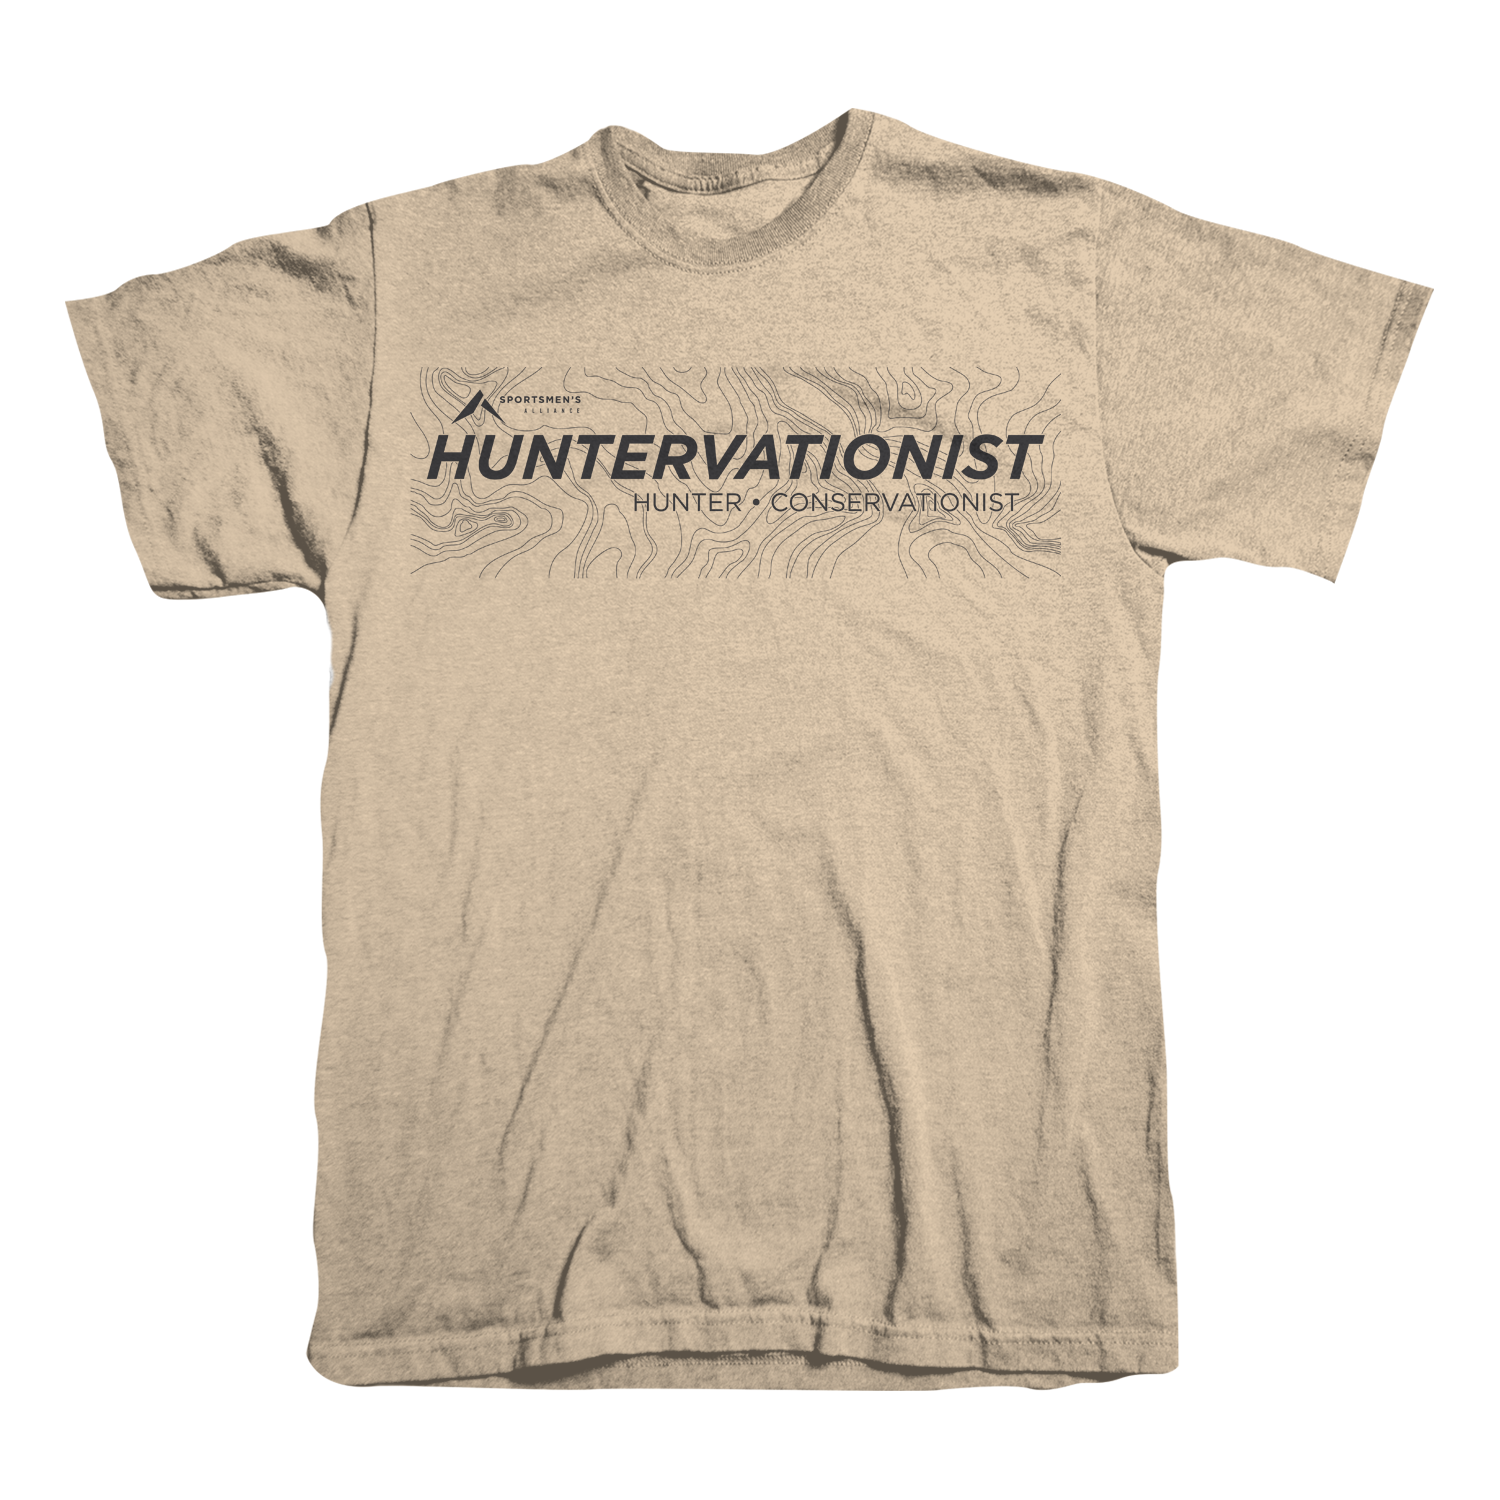 HuntervationistComp_4 HuntervationistComp_3 HuntervationistComp_5 ...